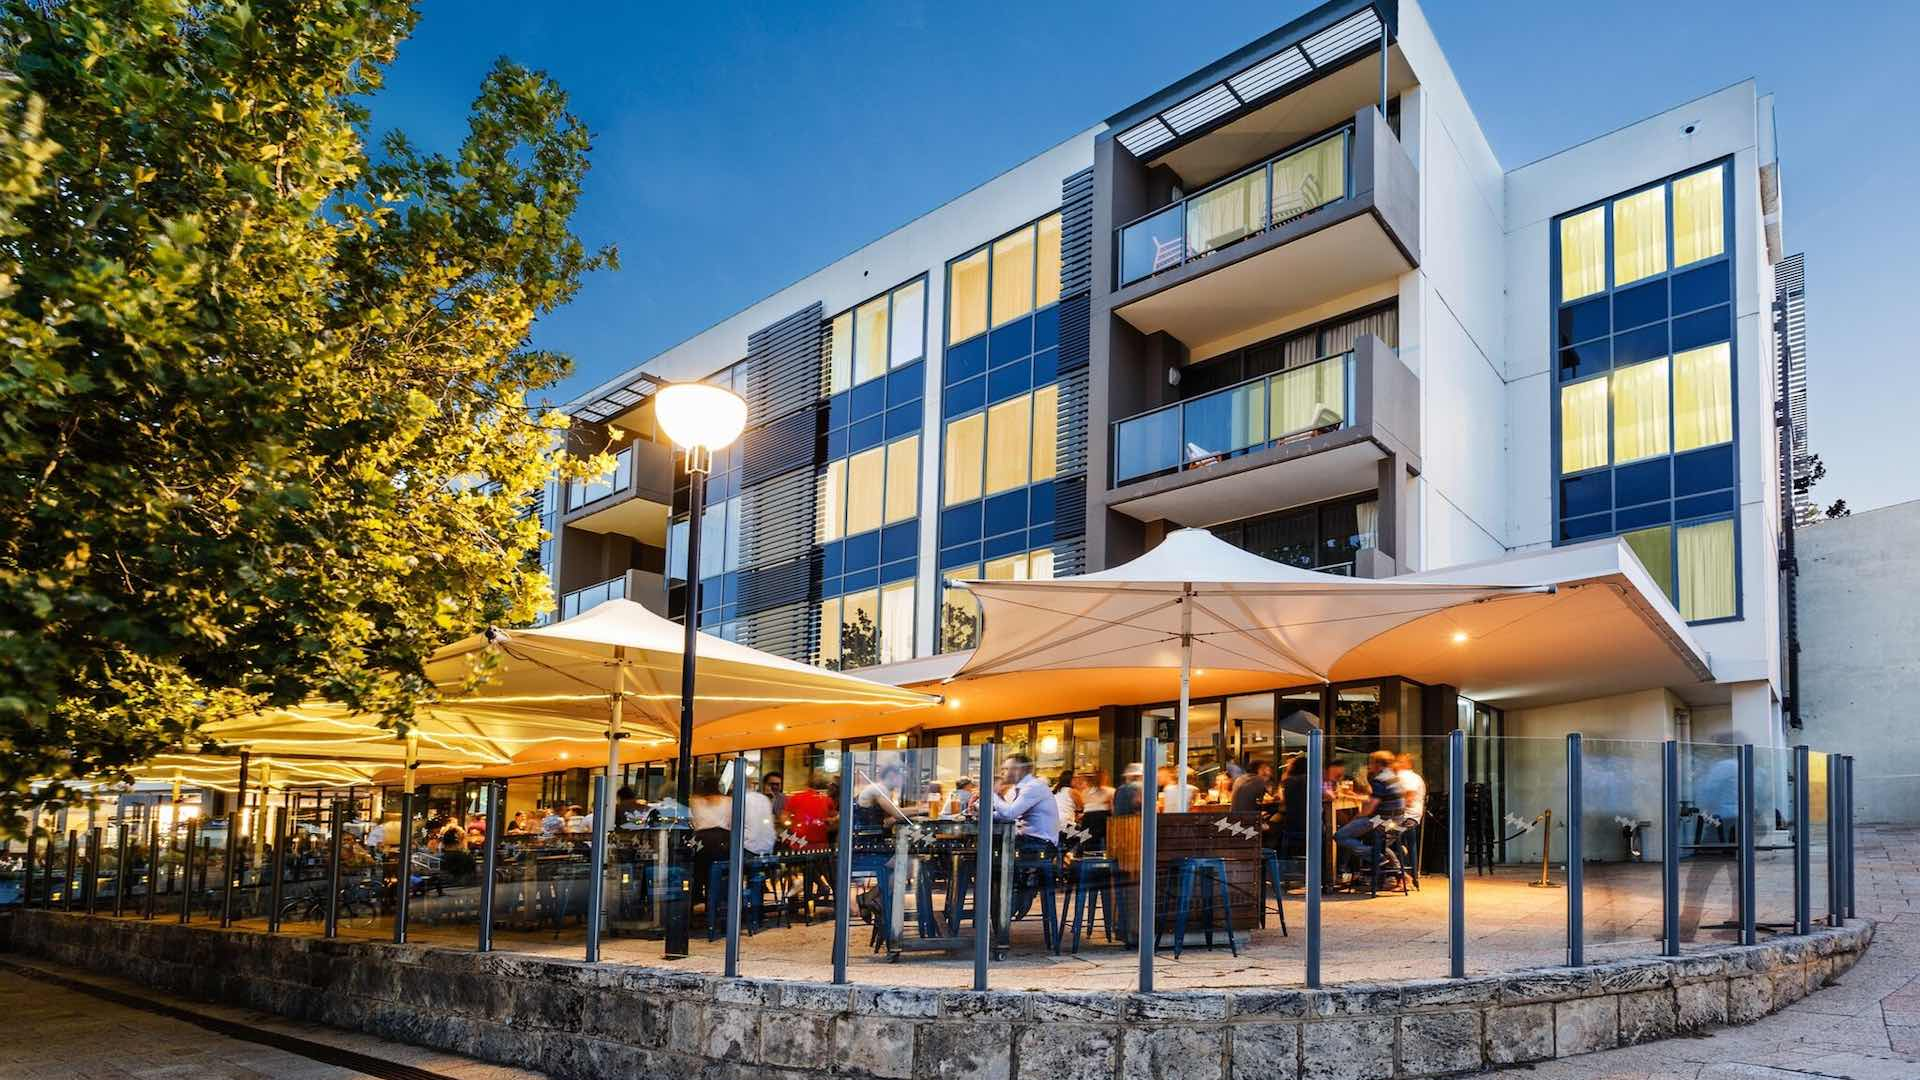 The Royal on the Waterfront best bars to watch sport in Perth